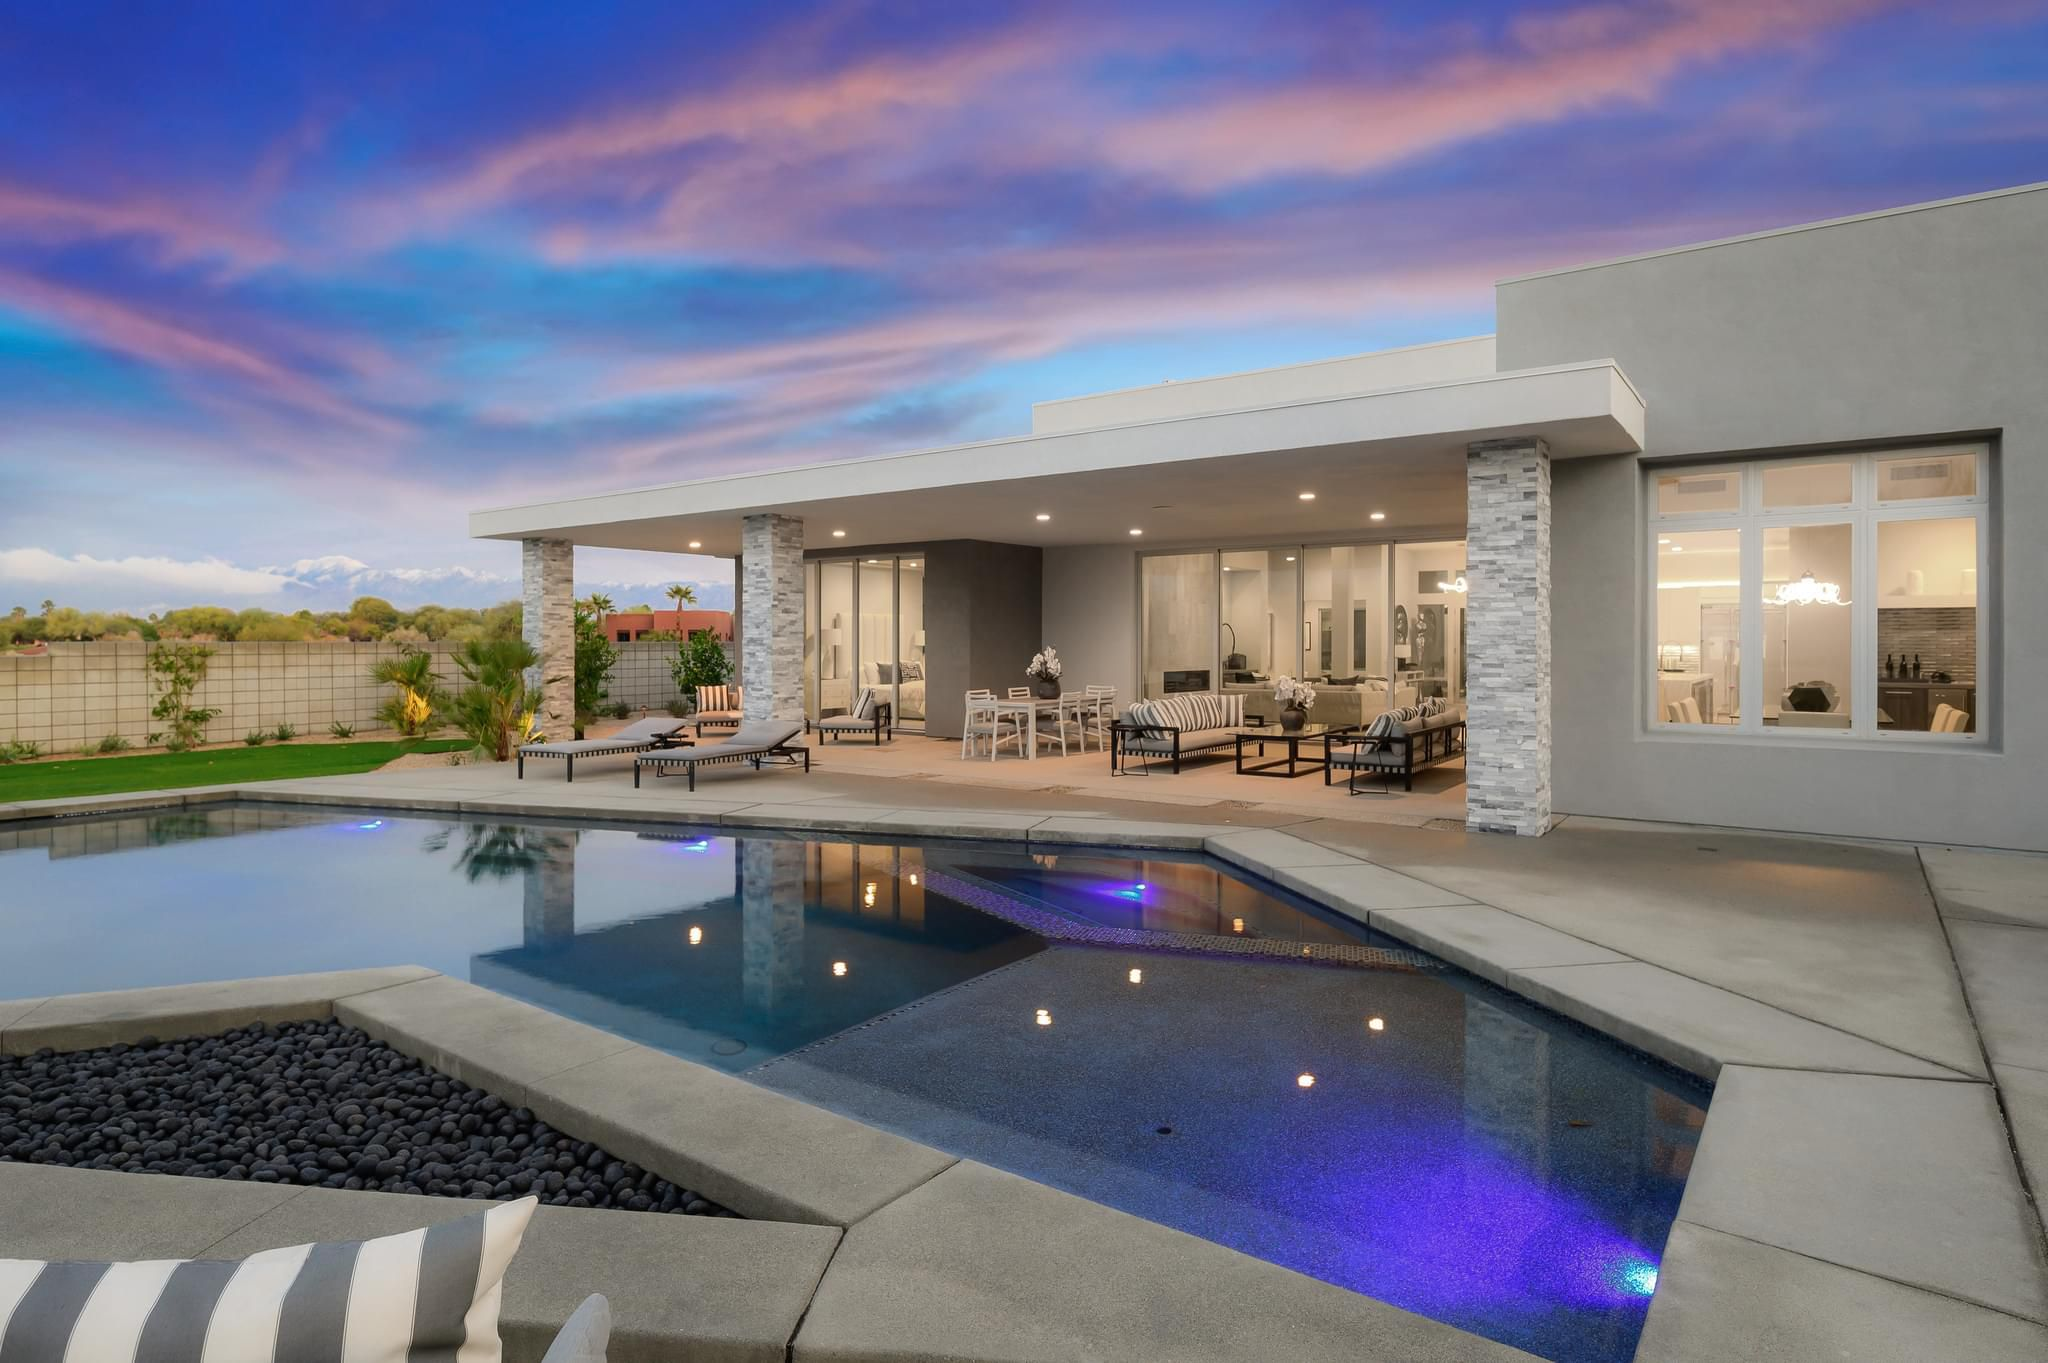 Main Photo: 93 ROYAL ST GEORGE'S Way in RANCHO MIRAGE: Out of Town House for sale